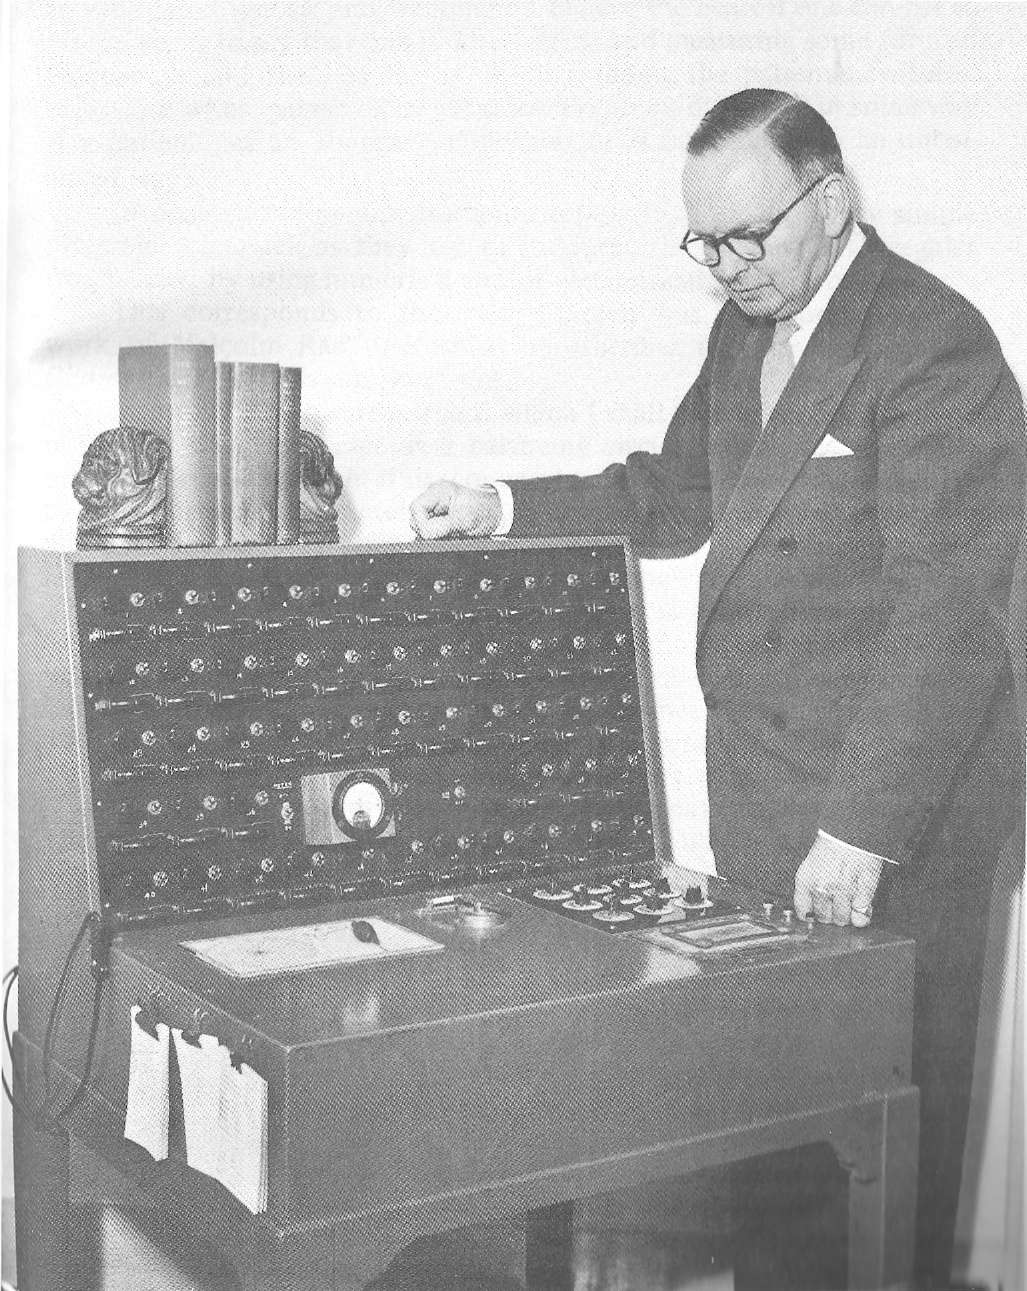 Wilson Radionic Instrument - '51' Diagnostic & Treatment